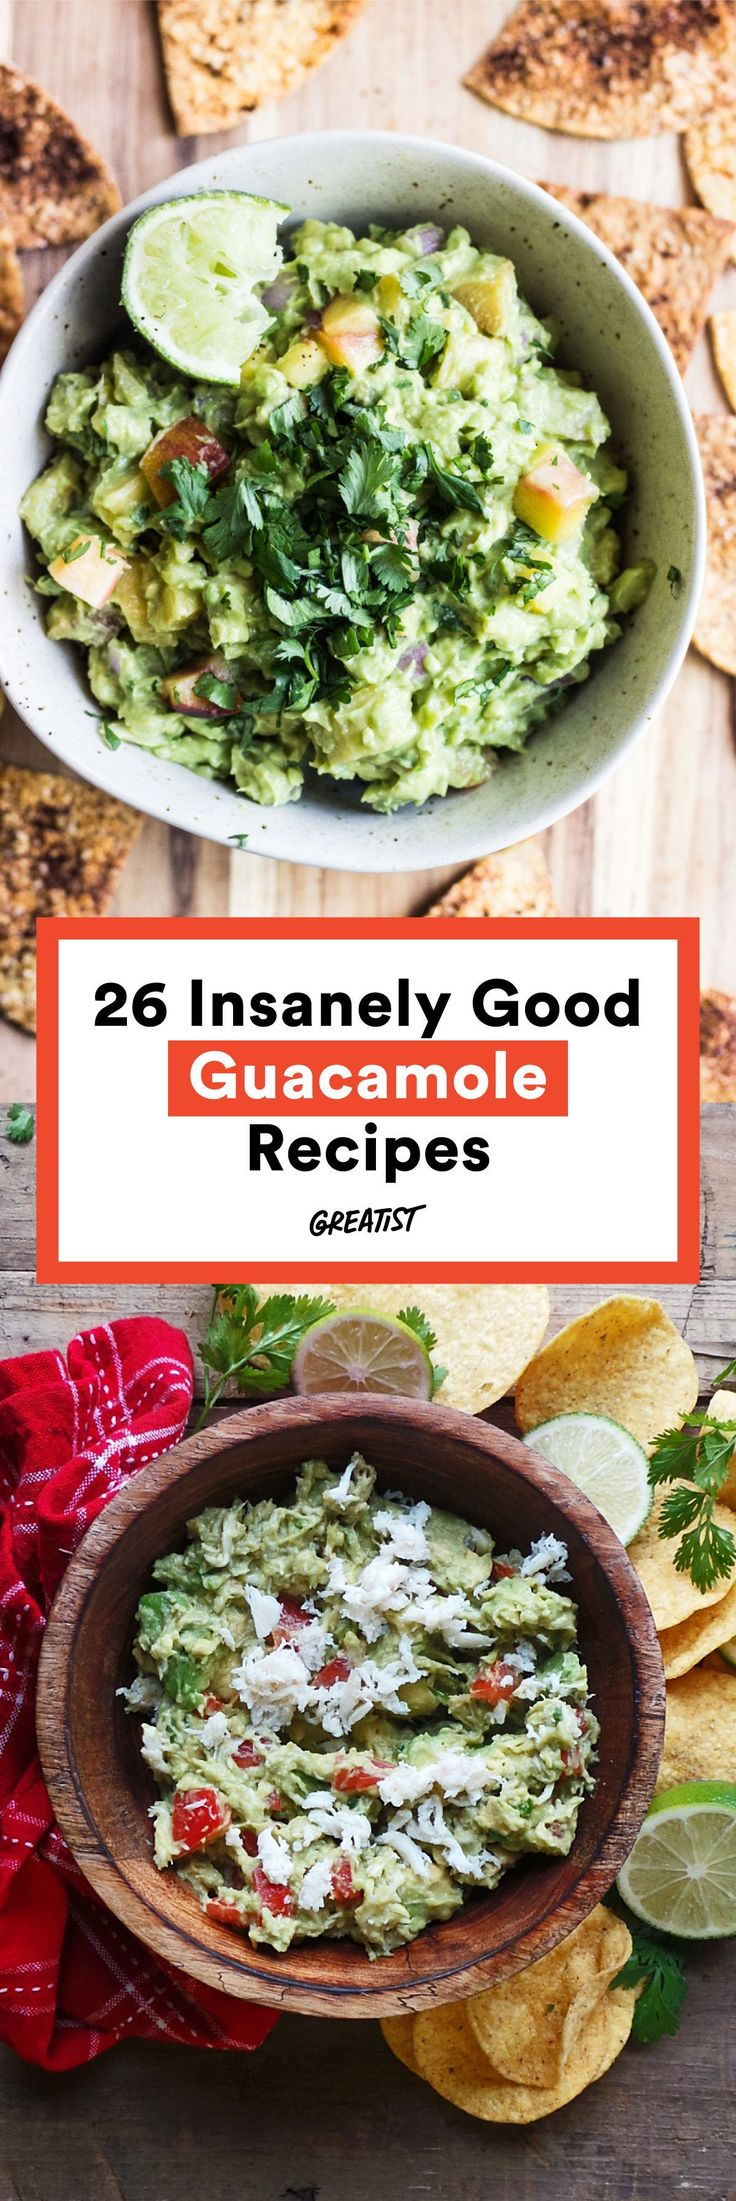 It's hard to imagine making guacamole even more delicious. #Greatist http://greatist.com/health/creative-healthy-guacamole-recipes